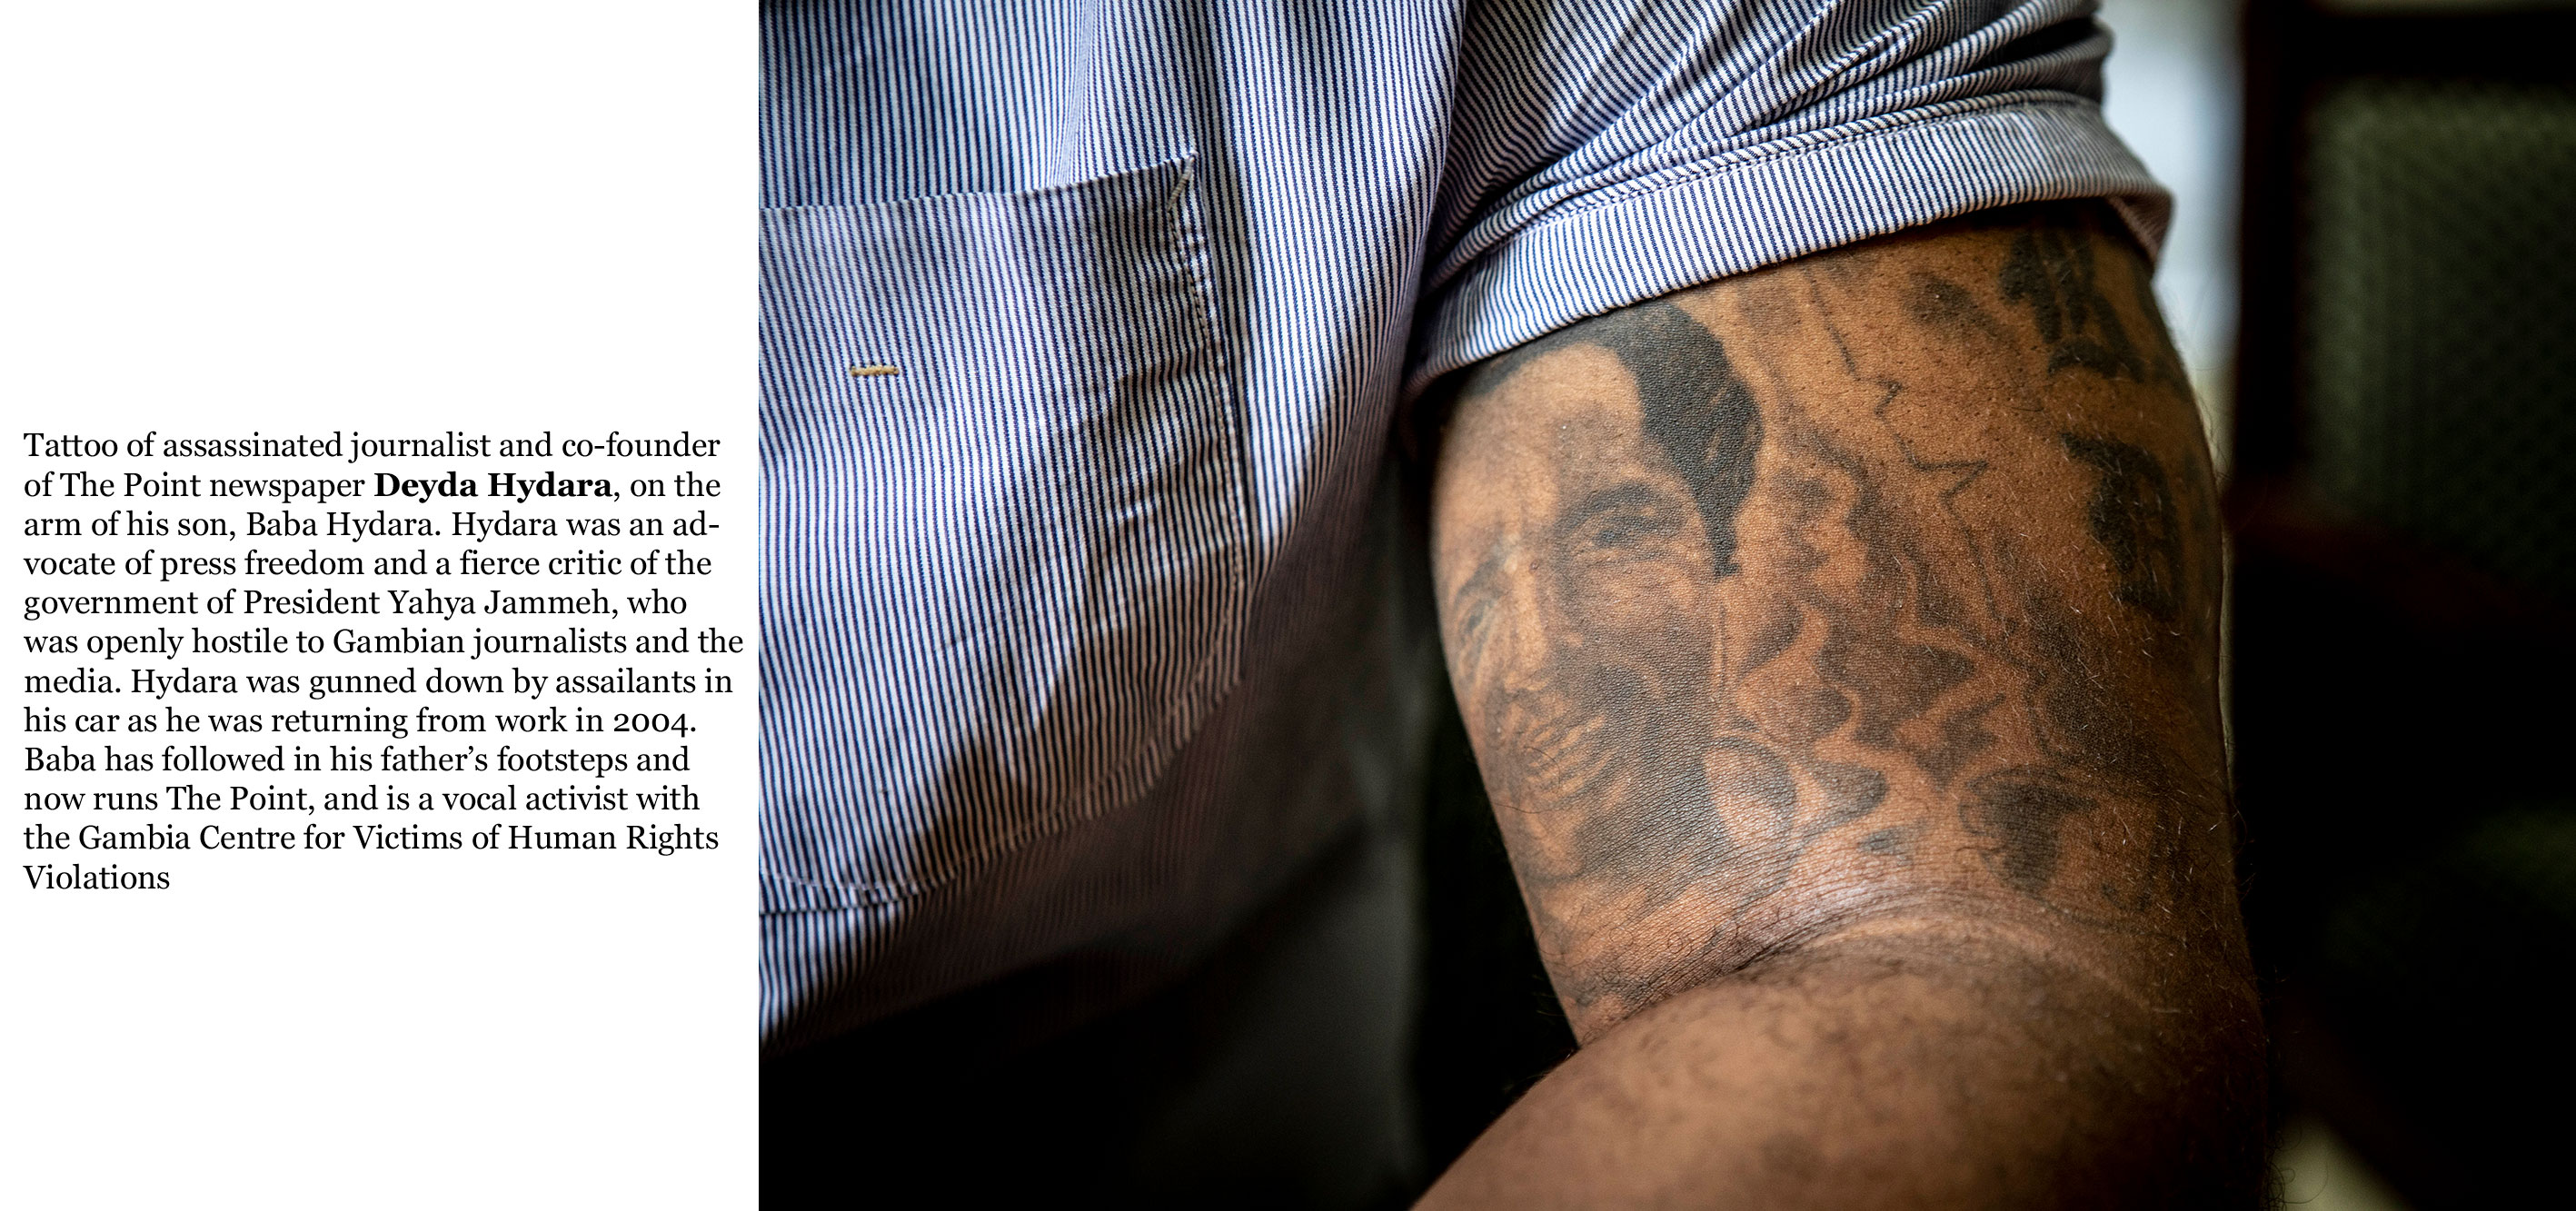 Gambia victims and resisters - tattoo of assassinated editor, Deyda Hydara,  co-founder of the Point Newspaper, on the arm of his son Baba Hydara. ©Jason_Florio_-2114_TEXT-_web